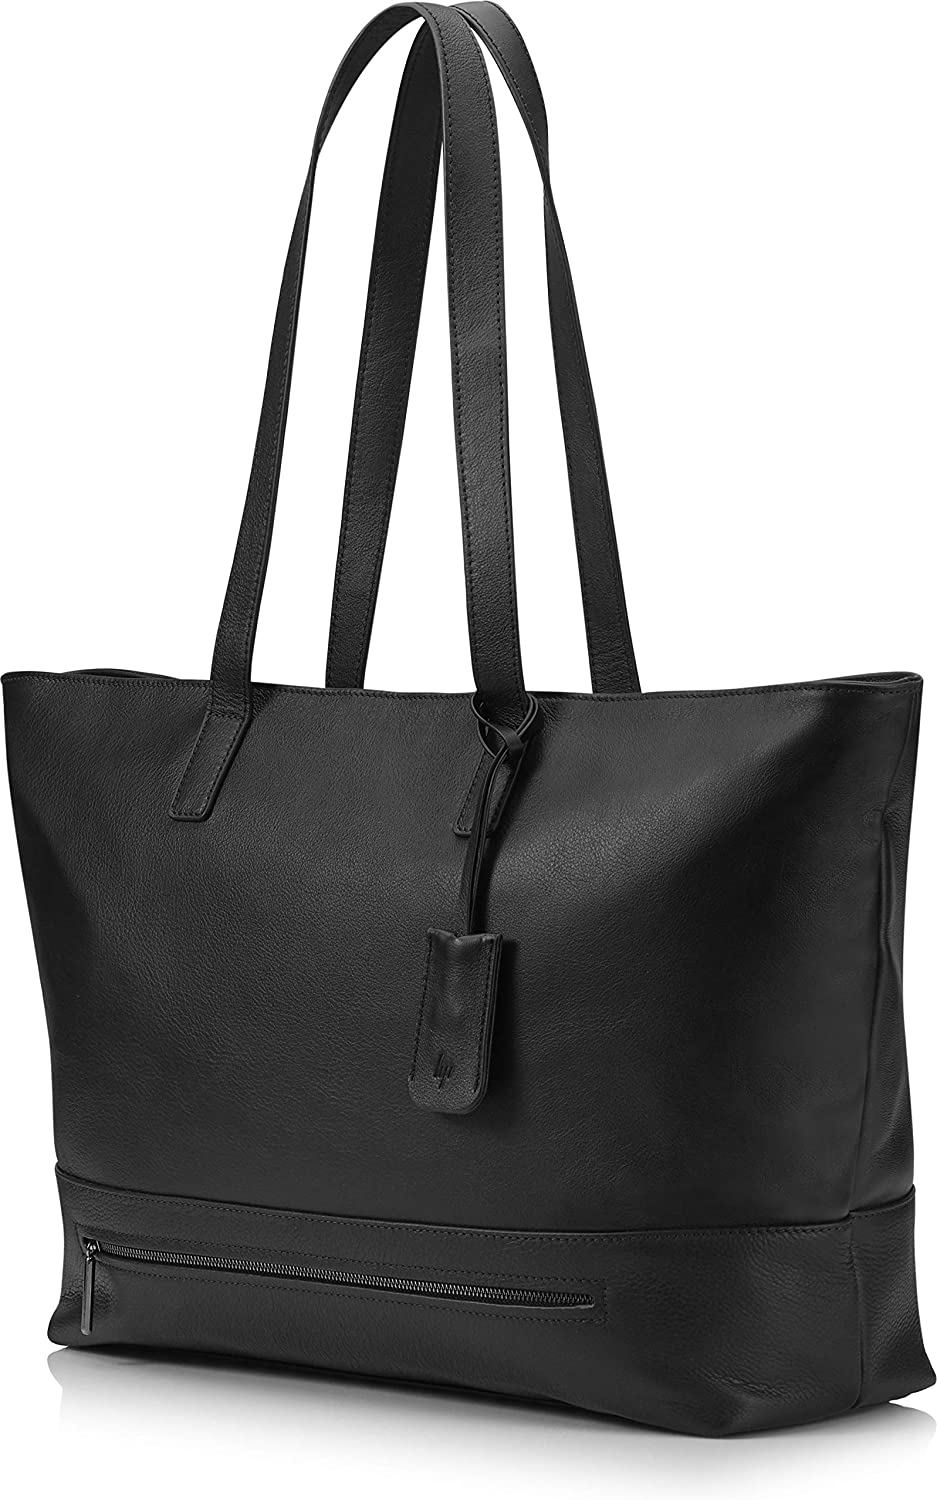 HP Spectre 14- to 17-inch Laptop Tech Tote (Full Grain Black Leather)